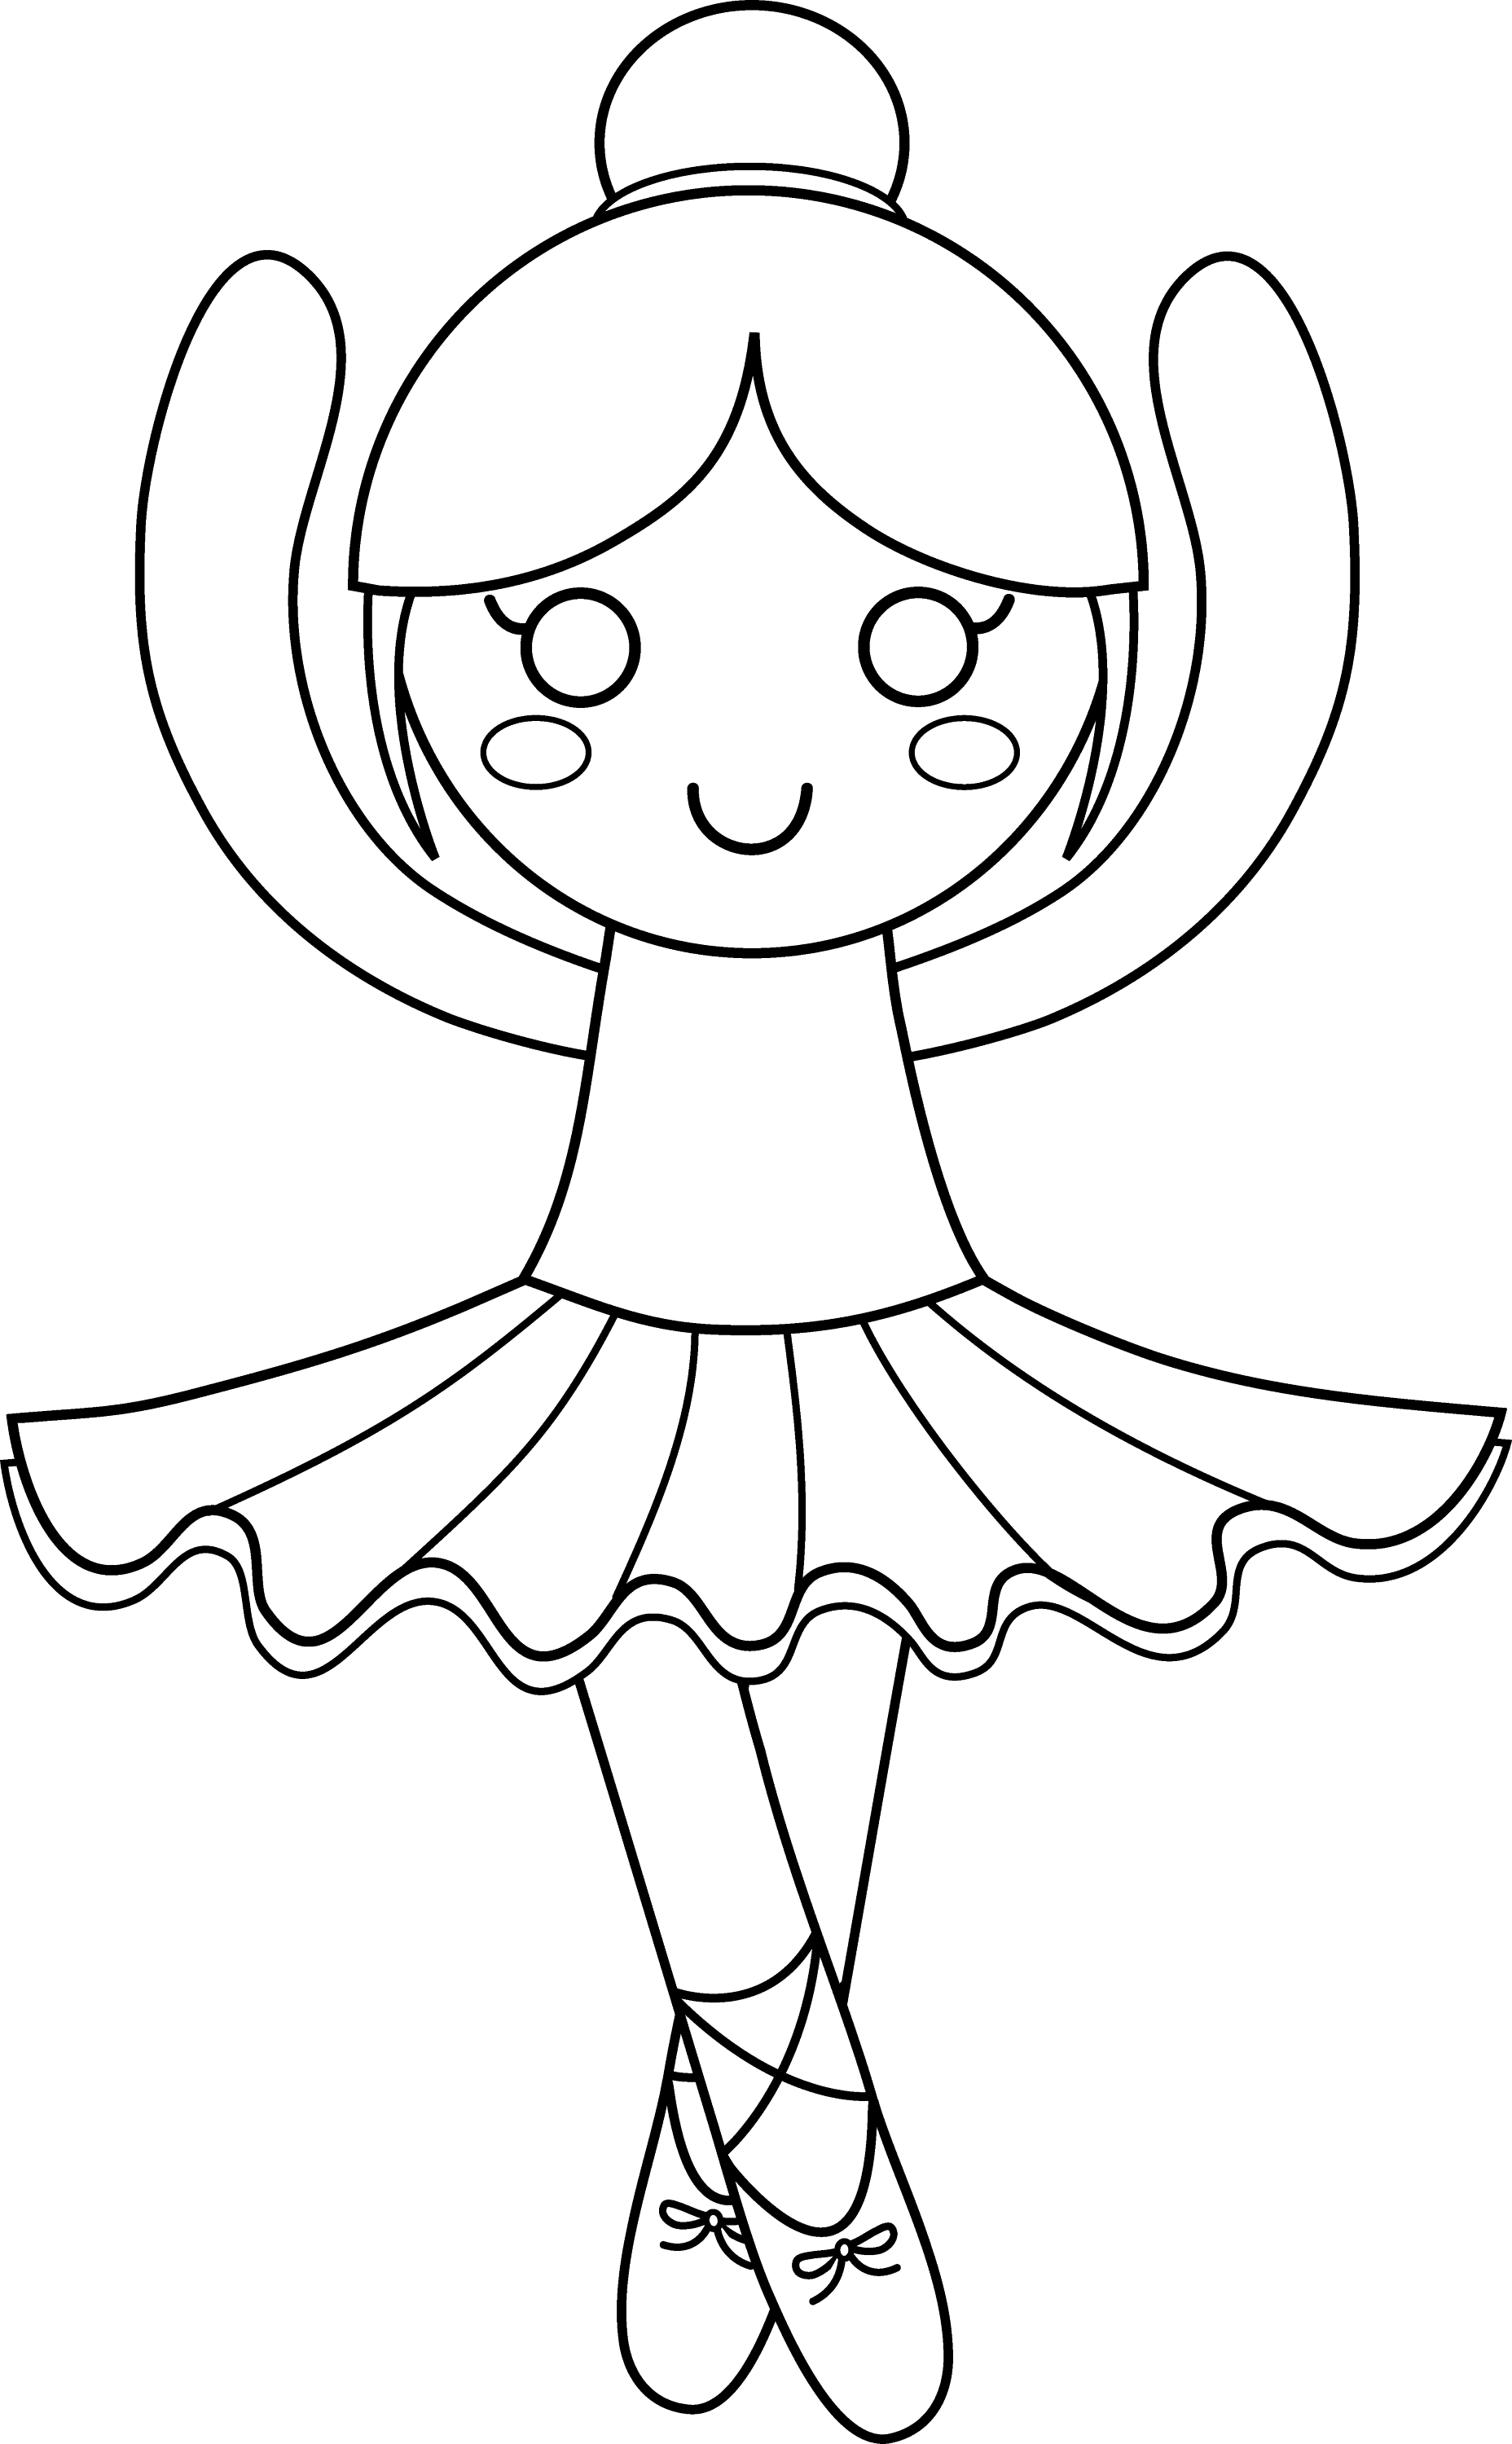 ballet pictures to colour free printable ballerina coloring pages at getdrawings to ballet pictures colour